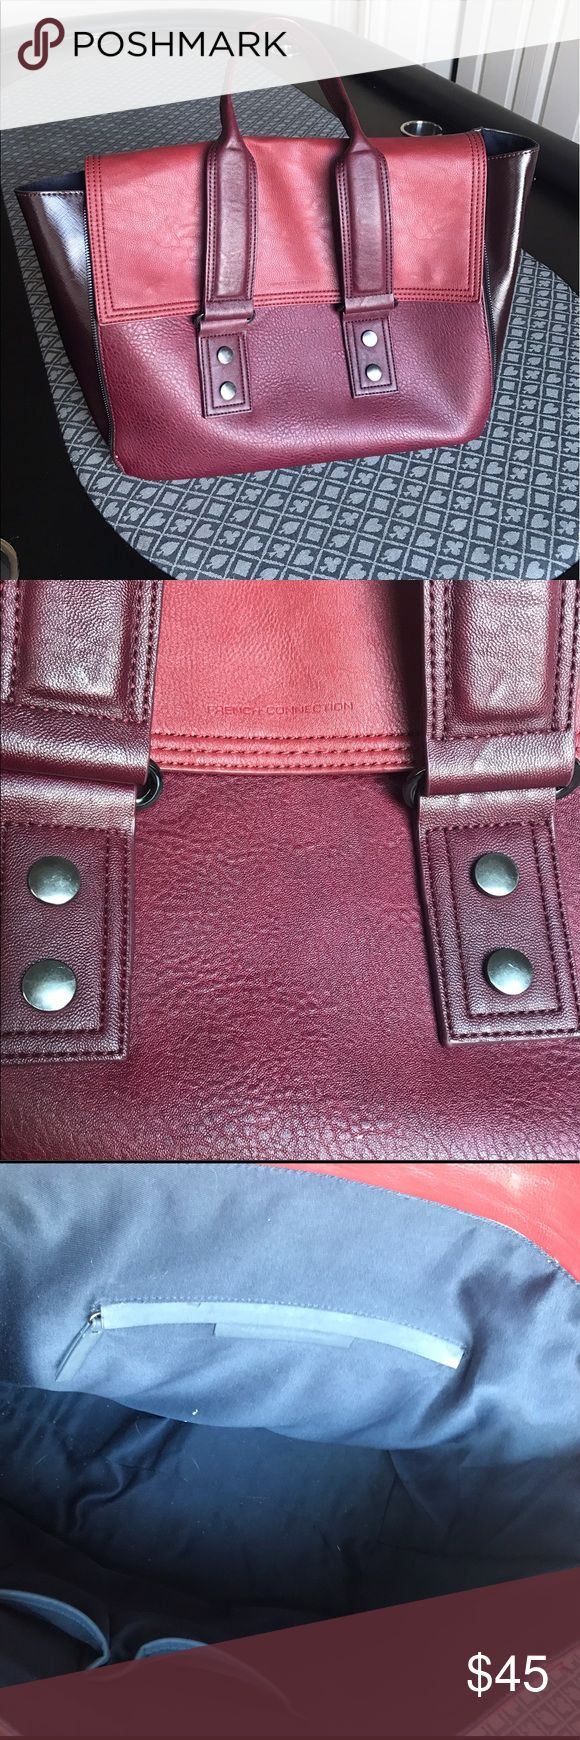 [ f r e n c h . c o n n e c t i o n . b a g ] Cute burgundy French connection bag! Great condition! Has a couple little nicks on the front barely noticeable and in the inside corner on the fabric lining there is a little bit of discoloration but that's only if you look really close! Great condition otherwise! French Connection Bags Totes